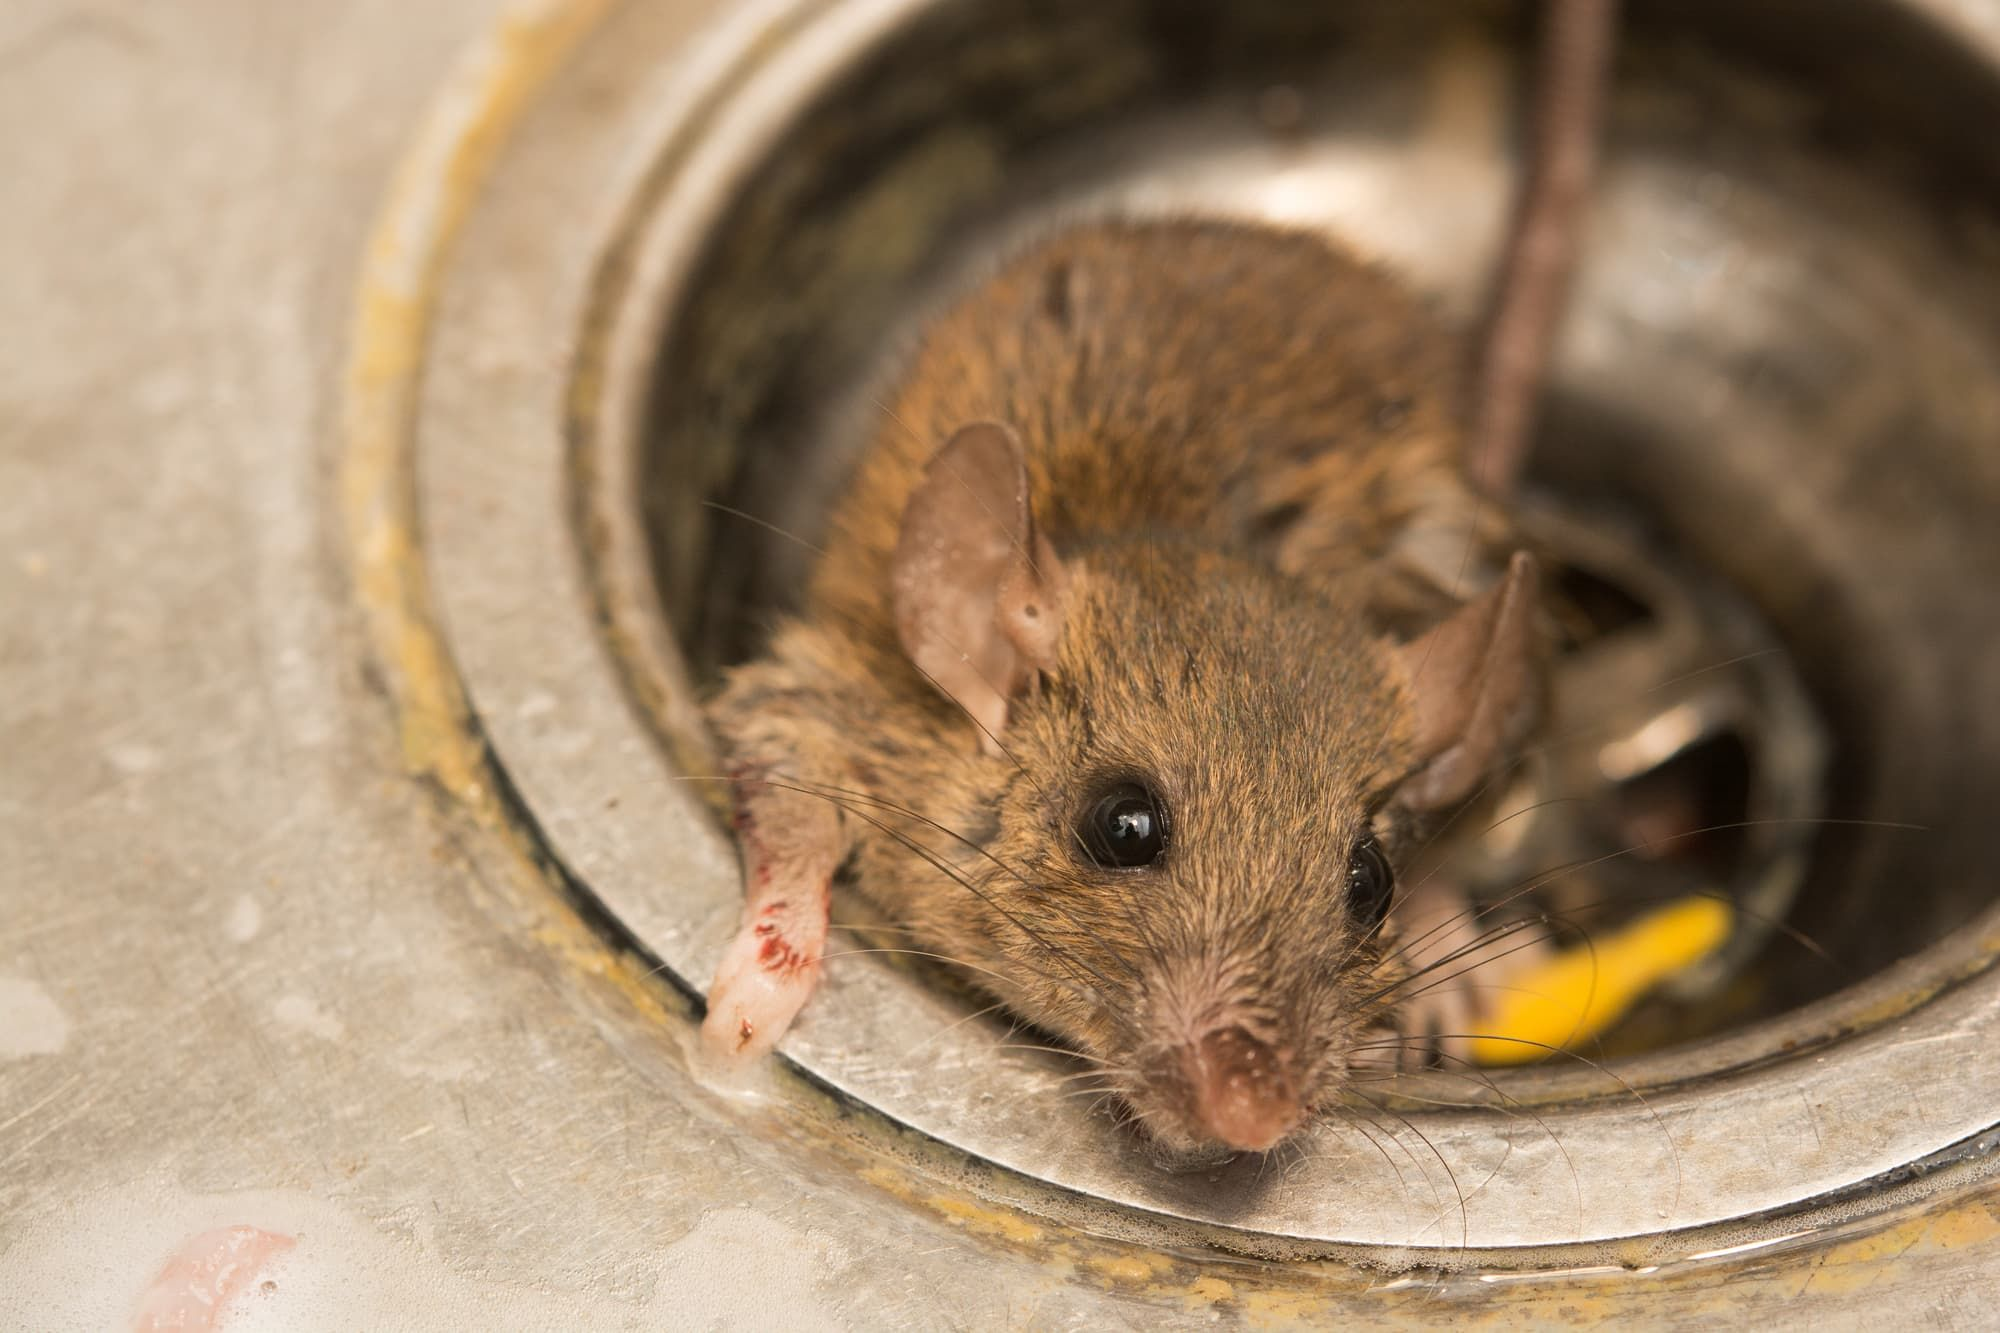 How To Properly Dispose Of A Dead Rat Mice Control Pests Pest Control